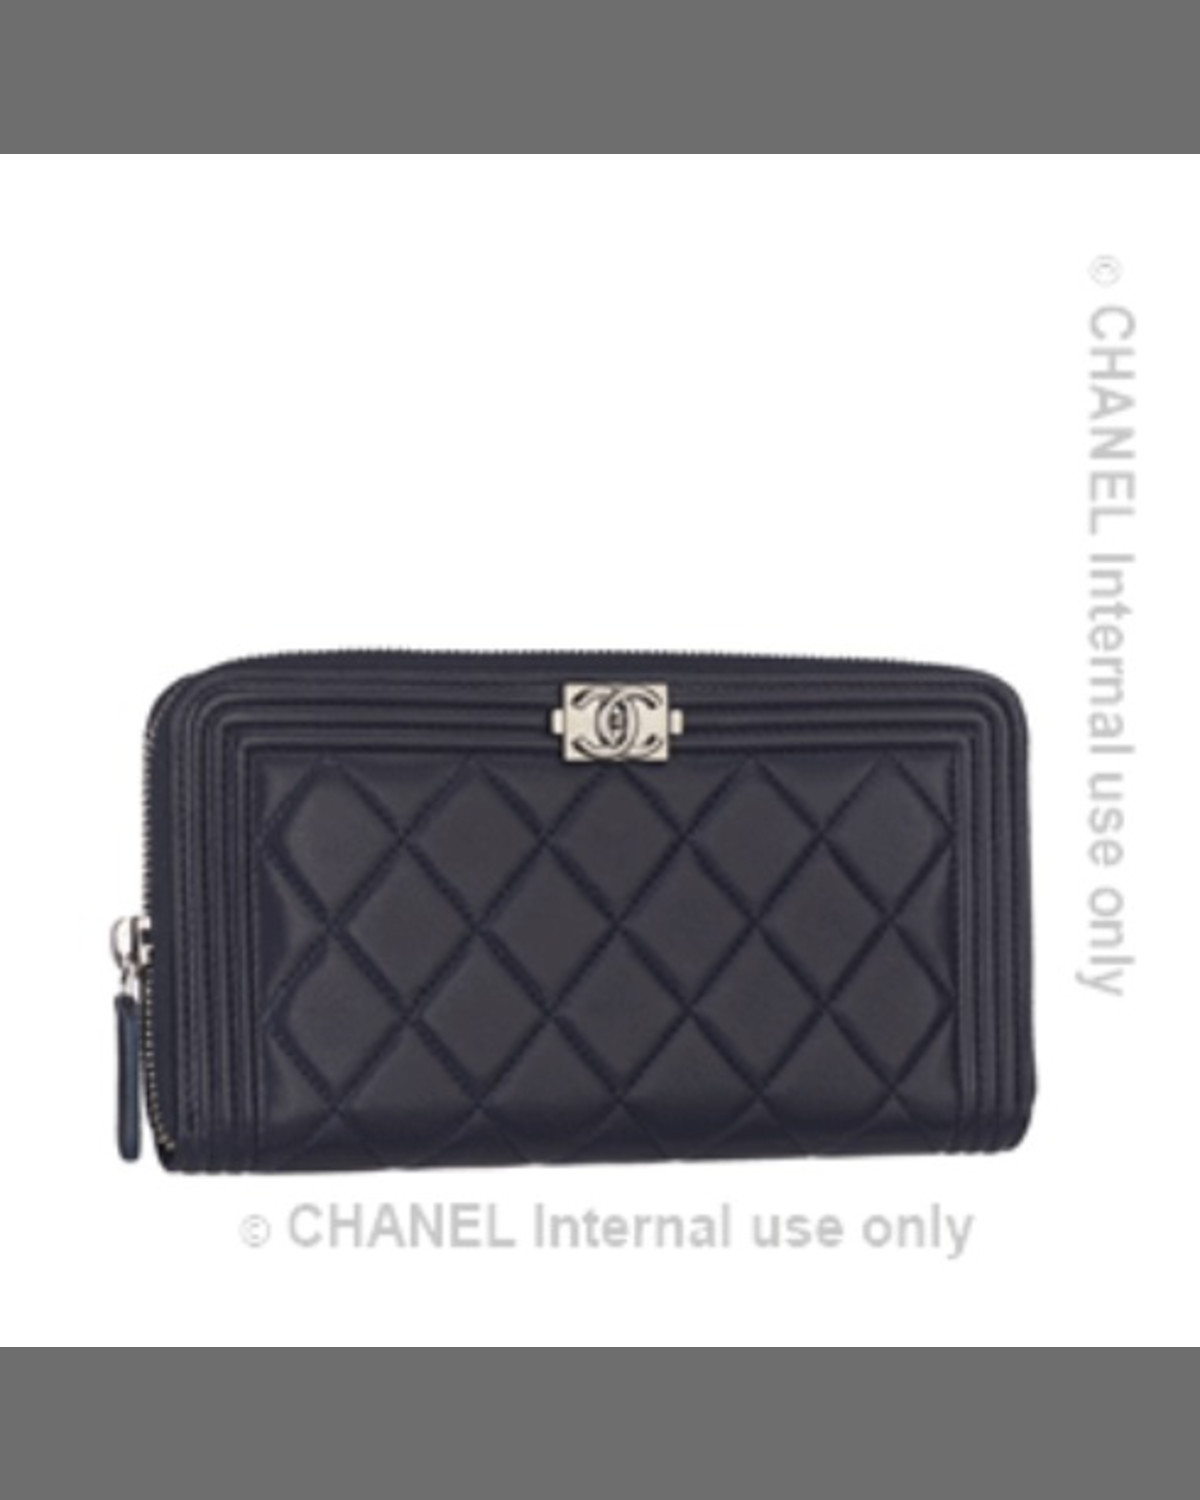 4ecab7fb5328 CHANEL Boy Quilted Medium Zip-Around Wallet, Black | Neiman Marcus